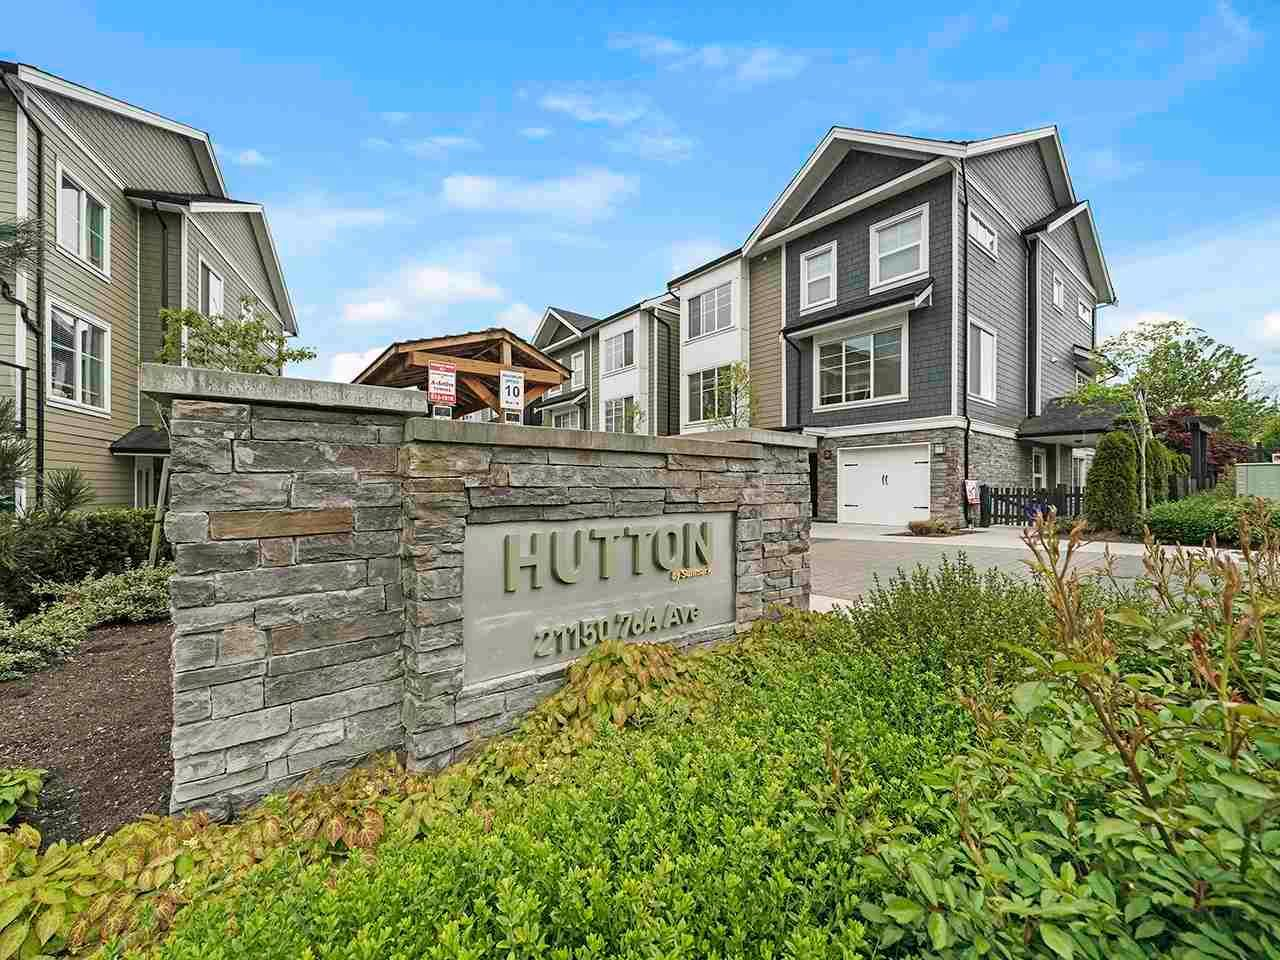 """Main Photo: 16 21150 76A Avenue in Langley: Willoughby Heights Townhouse for sale in """"Hutton"""" : MLS®# R2582993"""